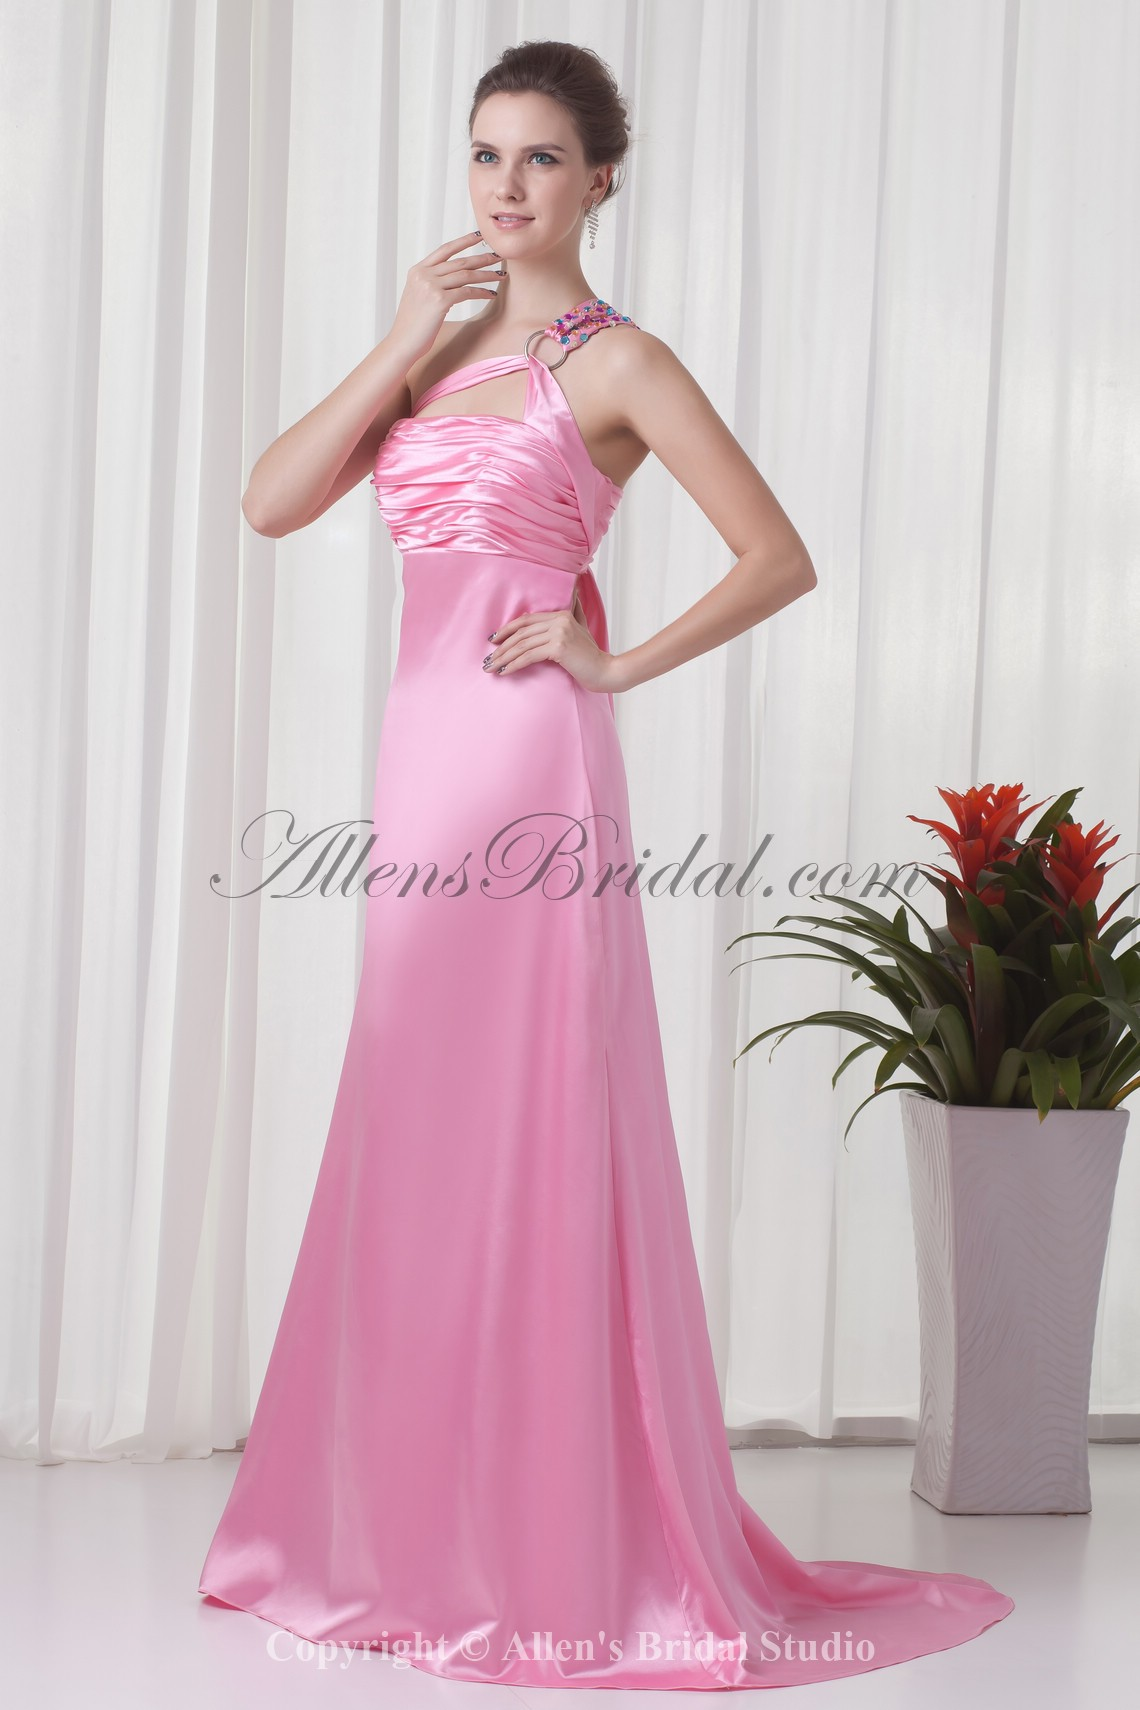 /302-2413/satin-one-shoulder-neckline-a-line-sweep-train-directionally-ruched-prom-dress.jpg